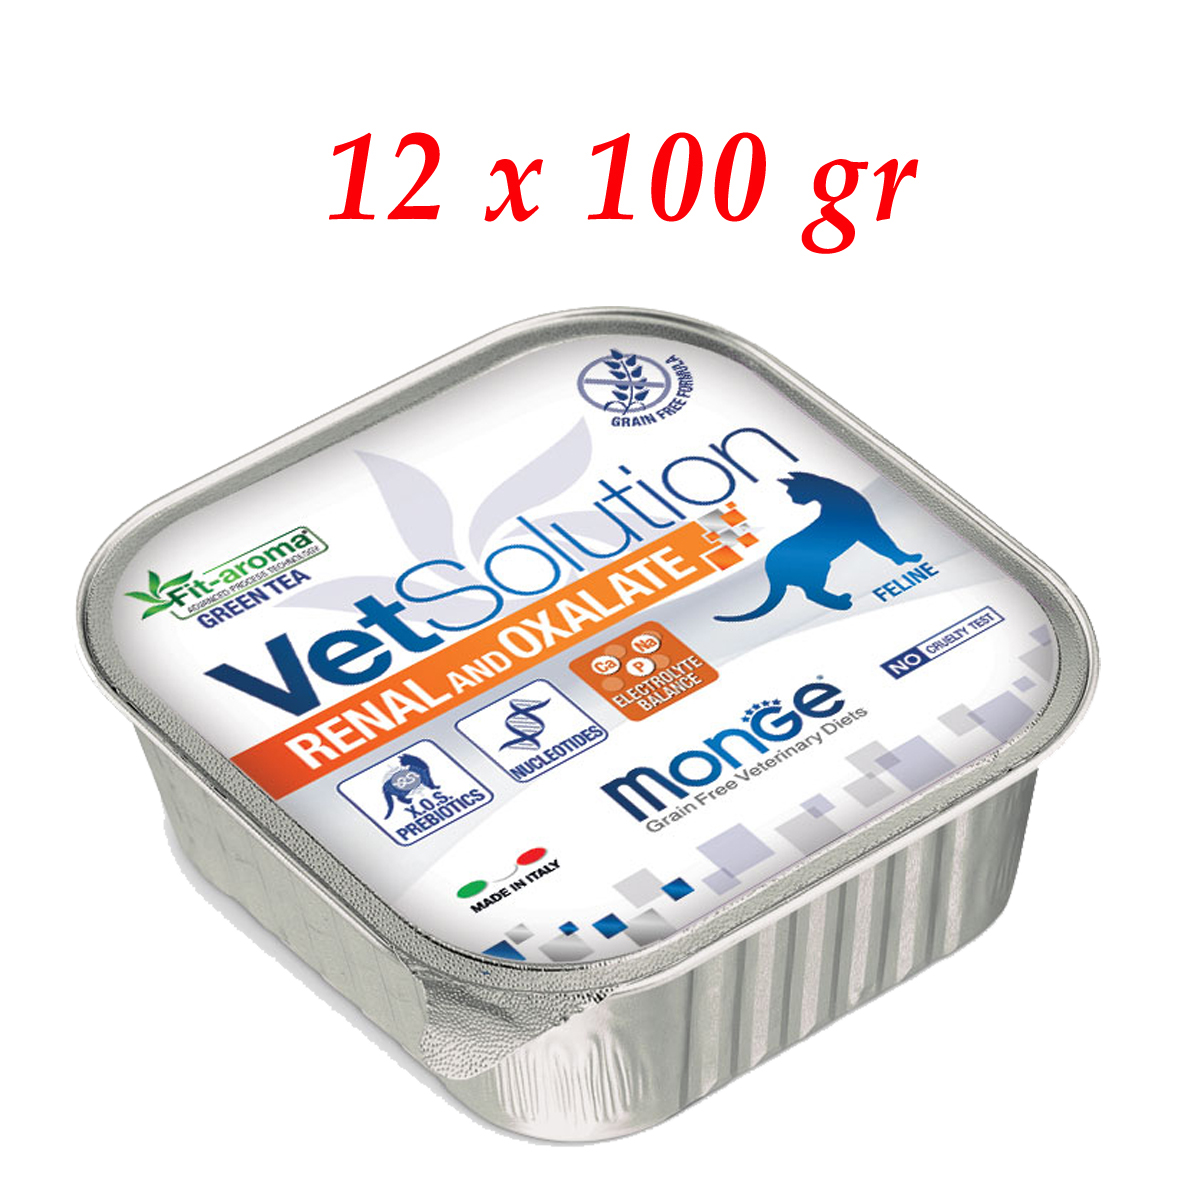 Monge VetSolution Gatto Renal and Oxalate 100 gr - 12 vaschette